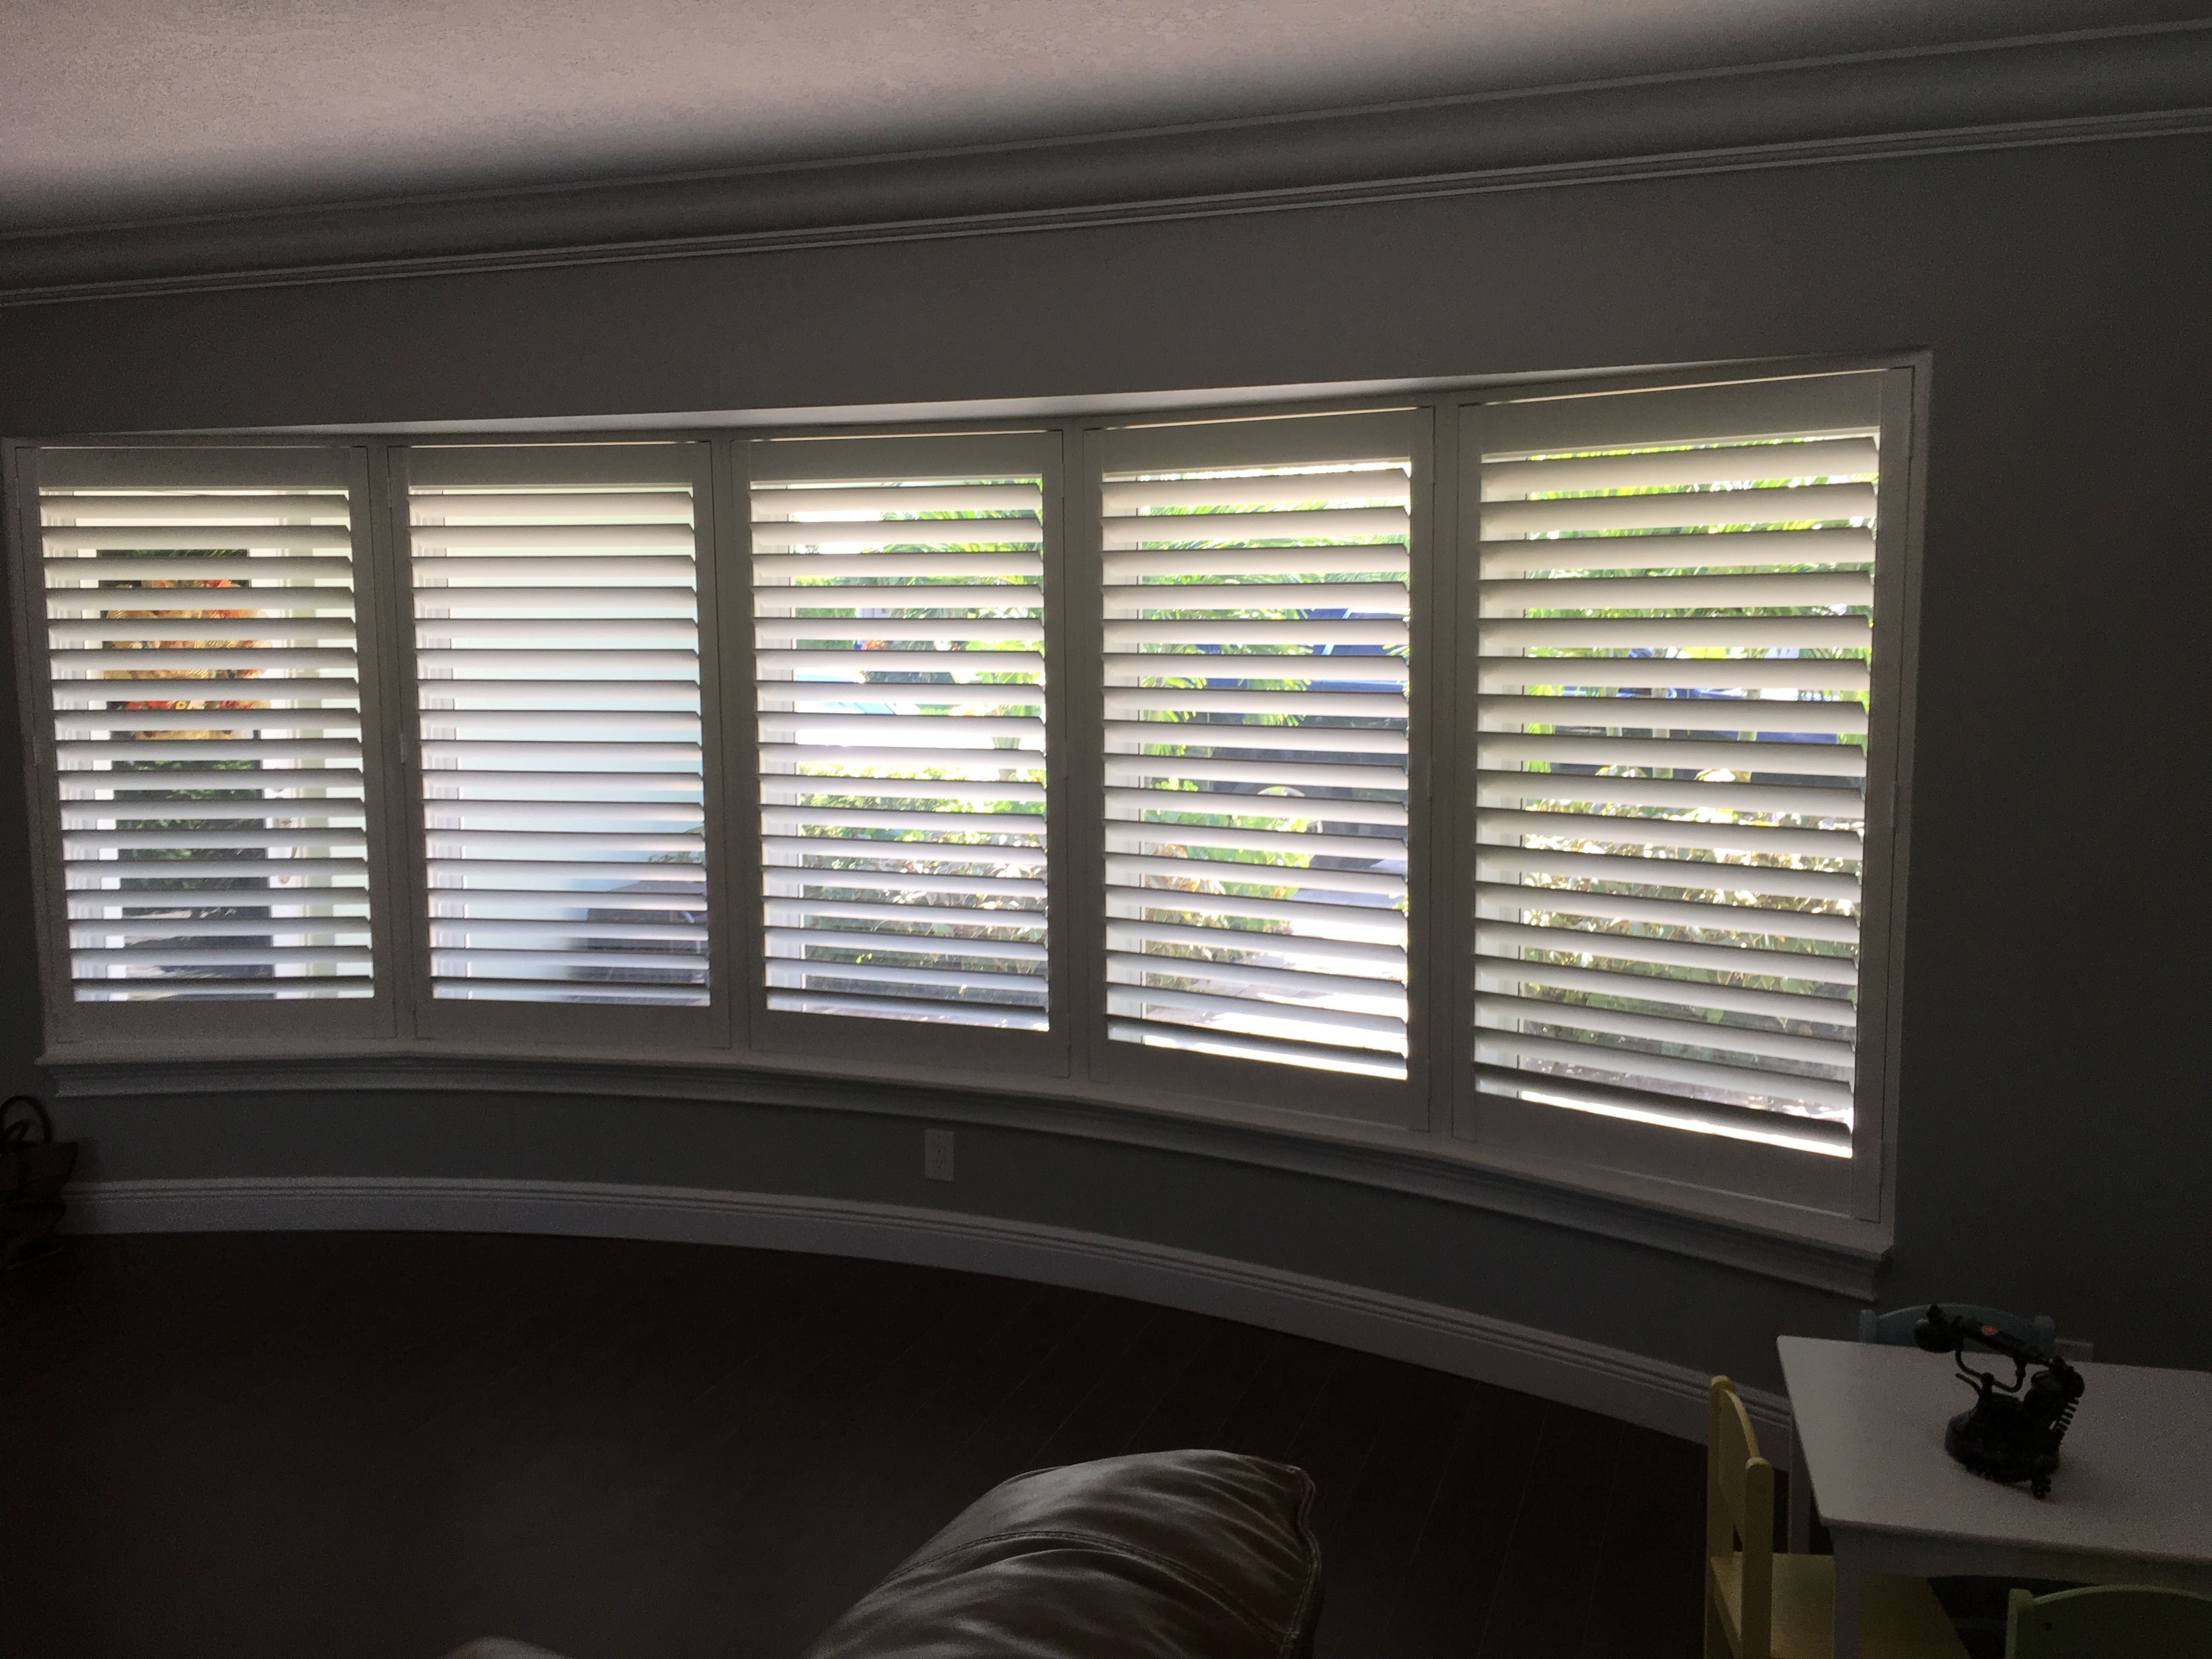 window off blinds ideas kmart plant solutions and installed interior ds octagon shutters cars captivating new for shades street interesting composite plantation covering shutter